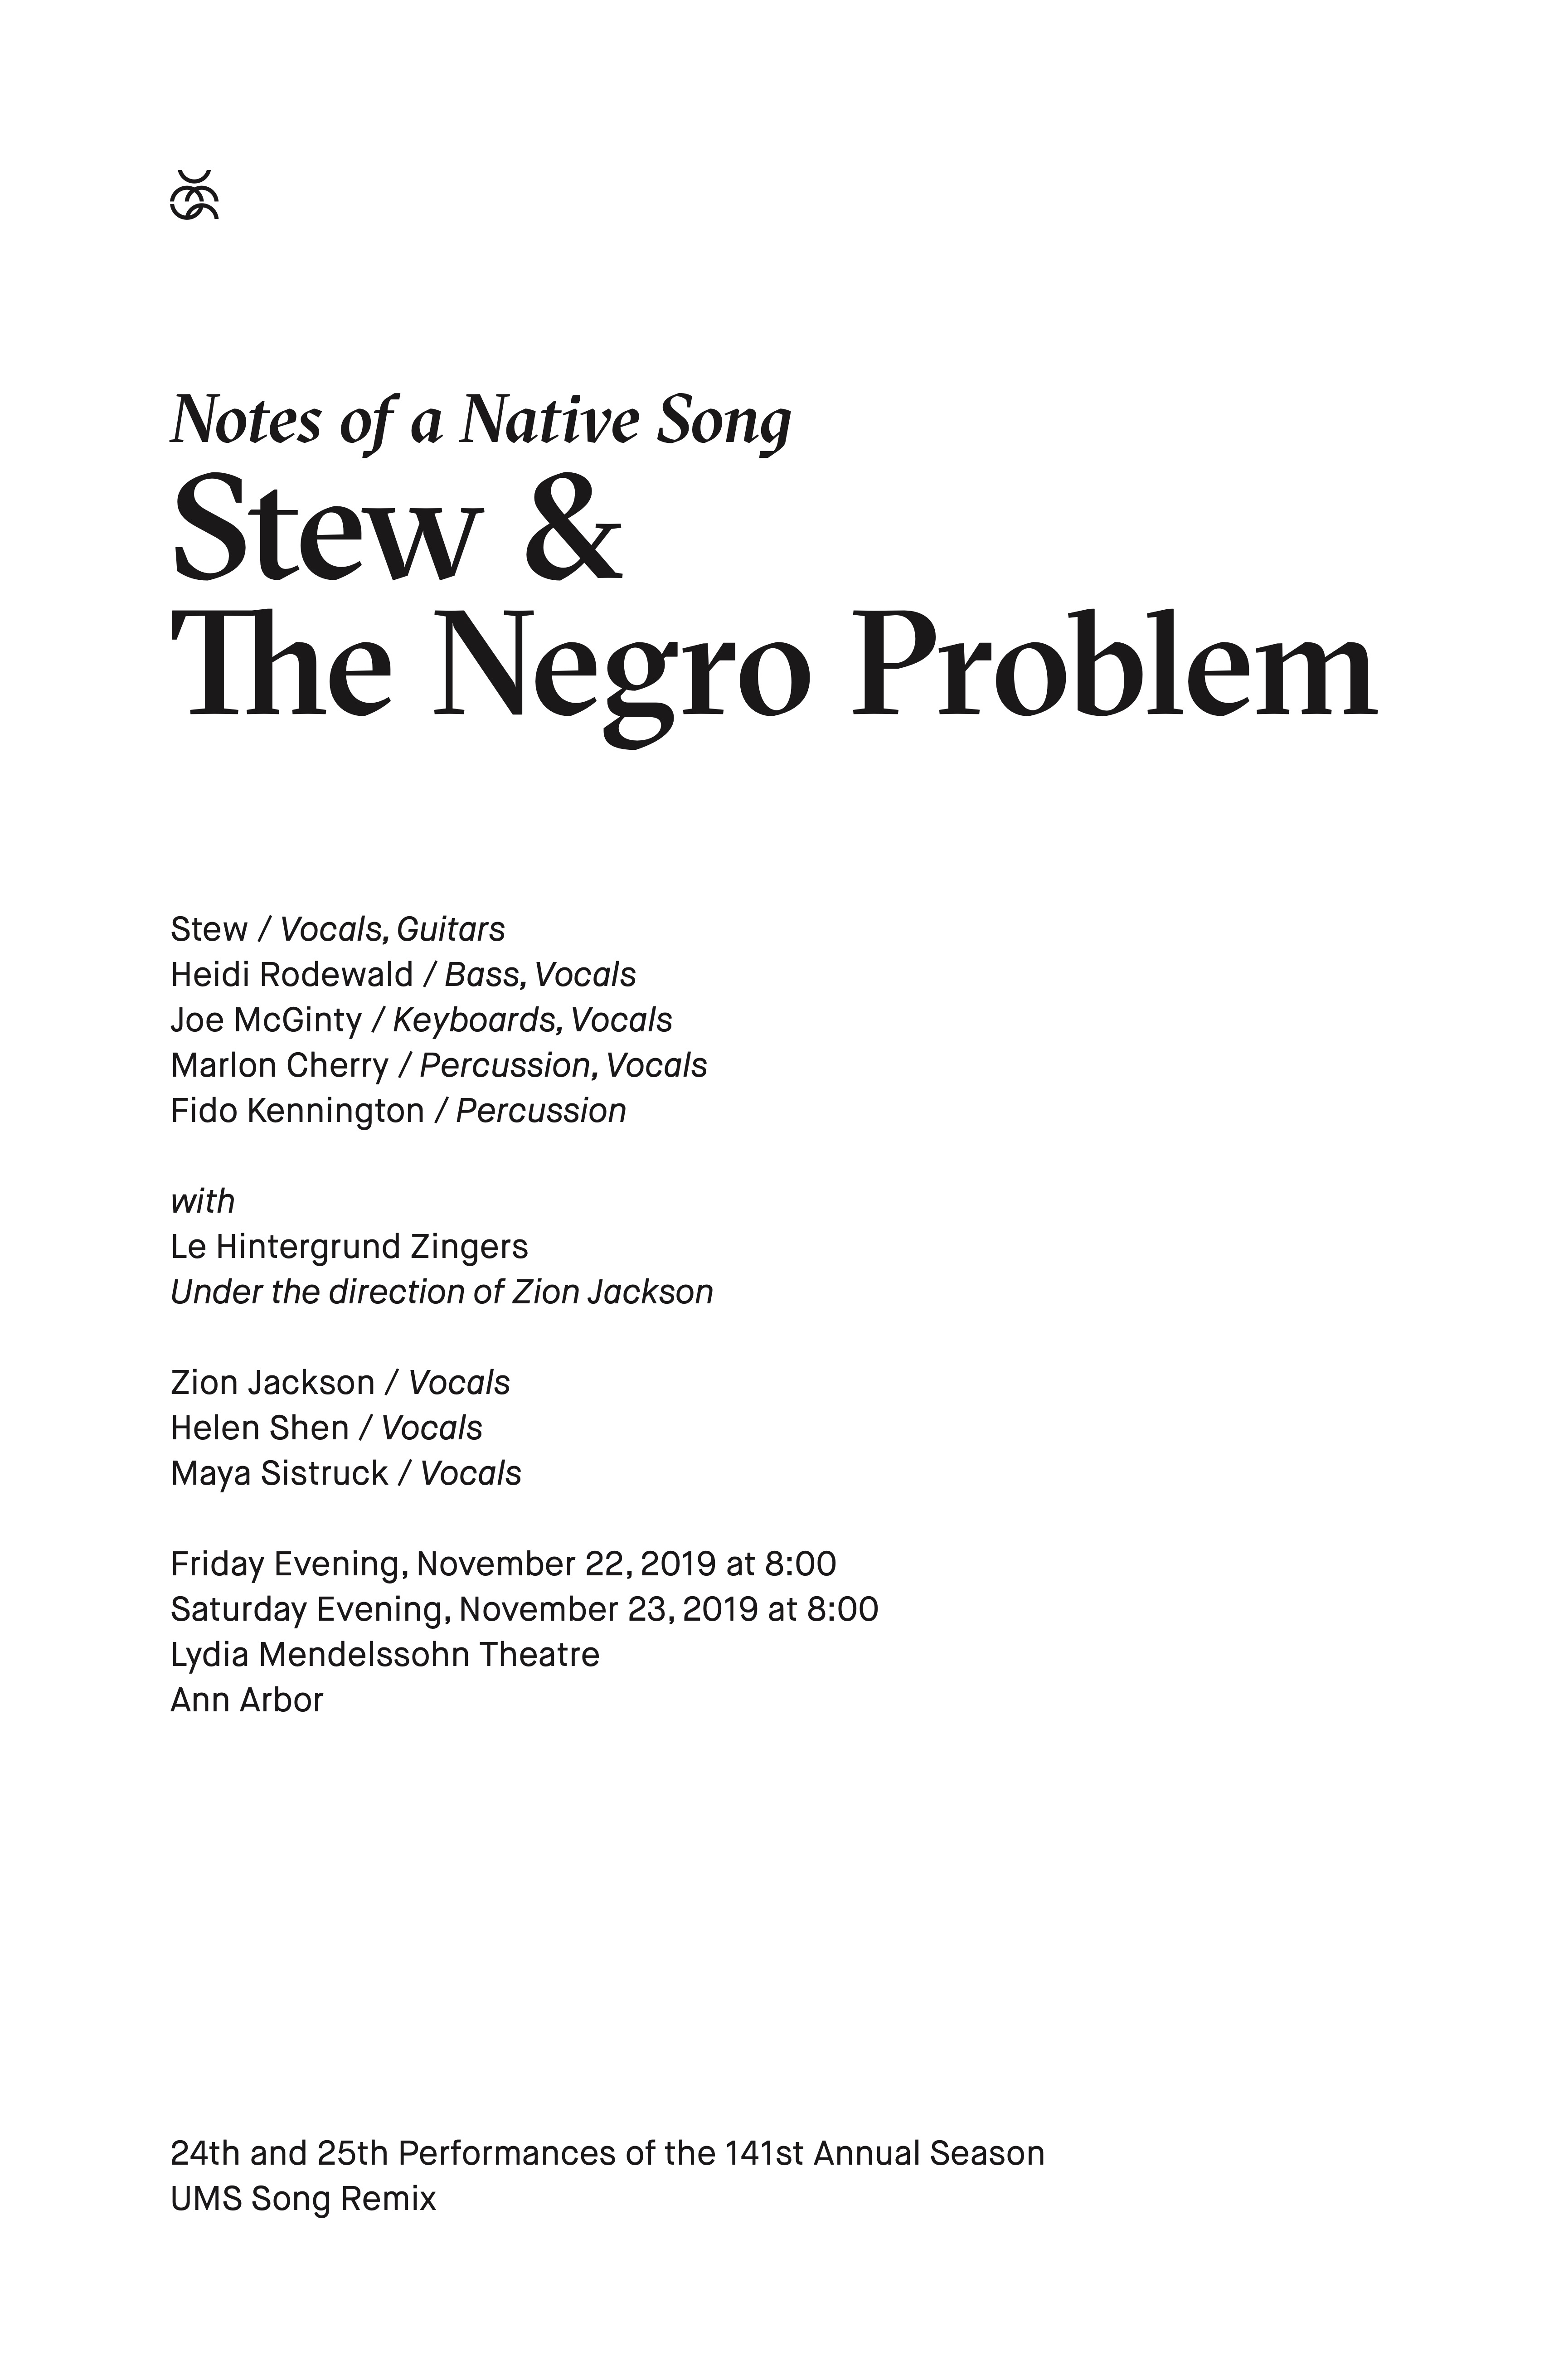 UMS Concert Program, November 22 & 23, 2019 - Notes of a Native Song: Stew & The Negro Problem image